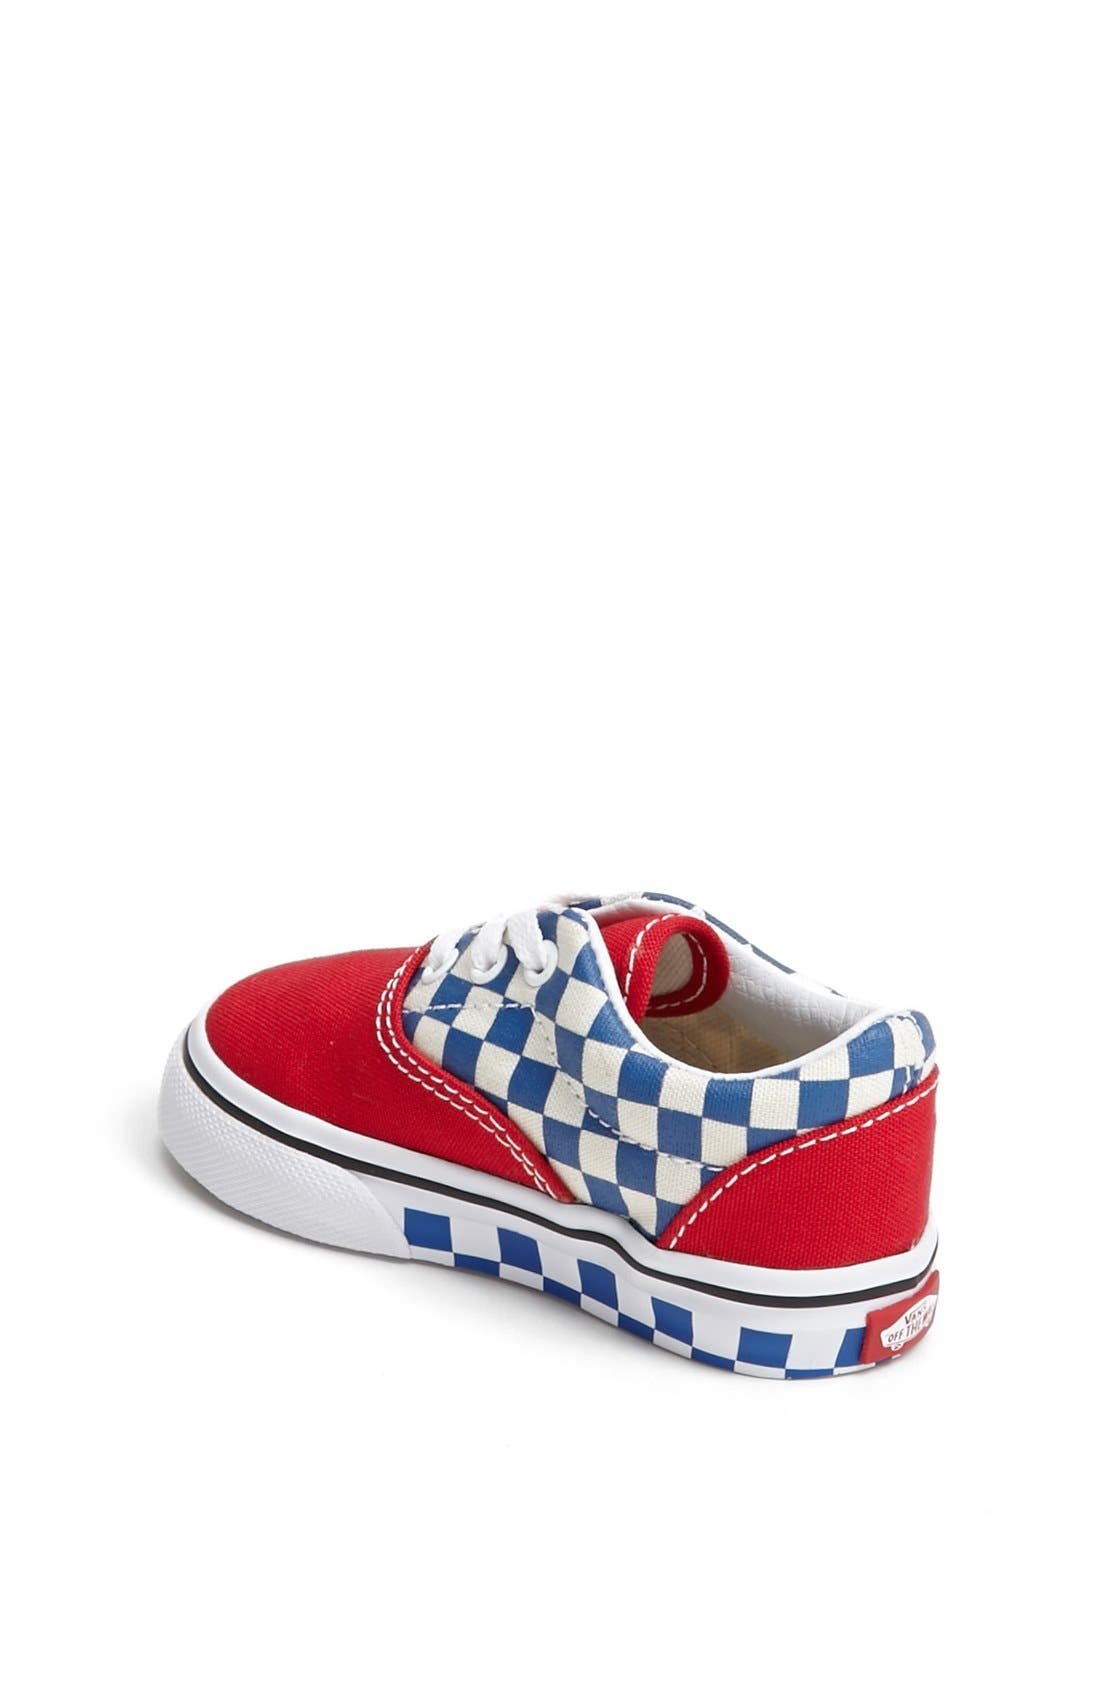 Alternate Image 2  - Vans 'Era - Checkerboard' Sneaker (Baby, Walker & Toddler)